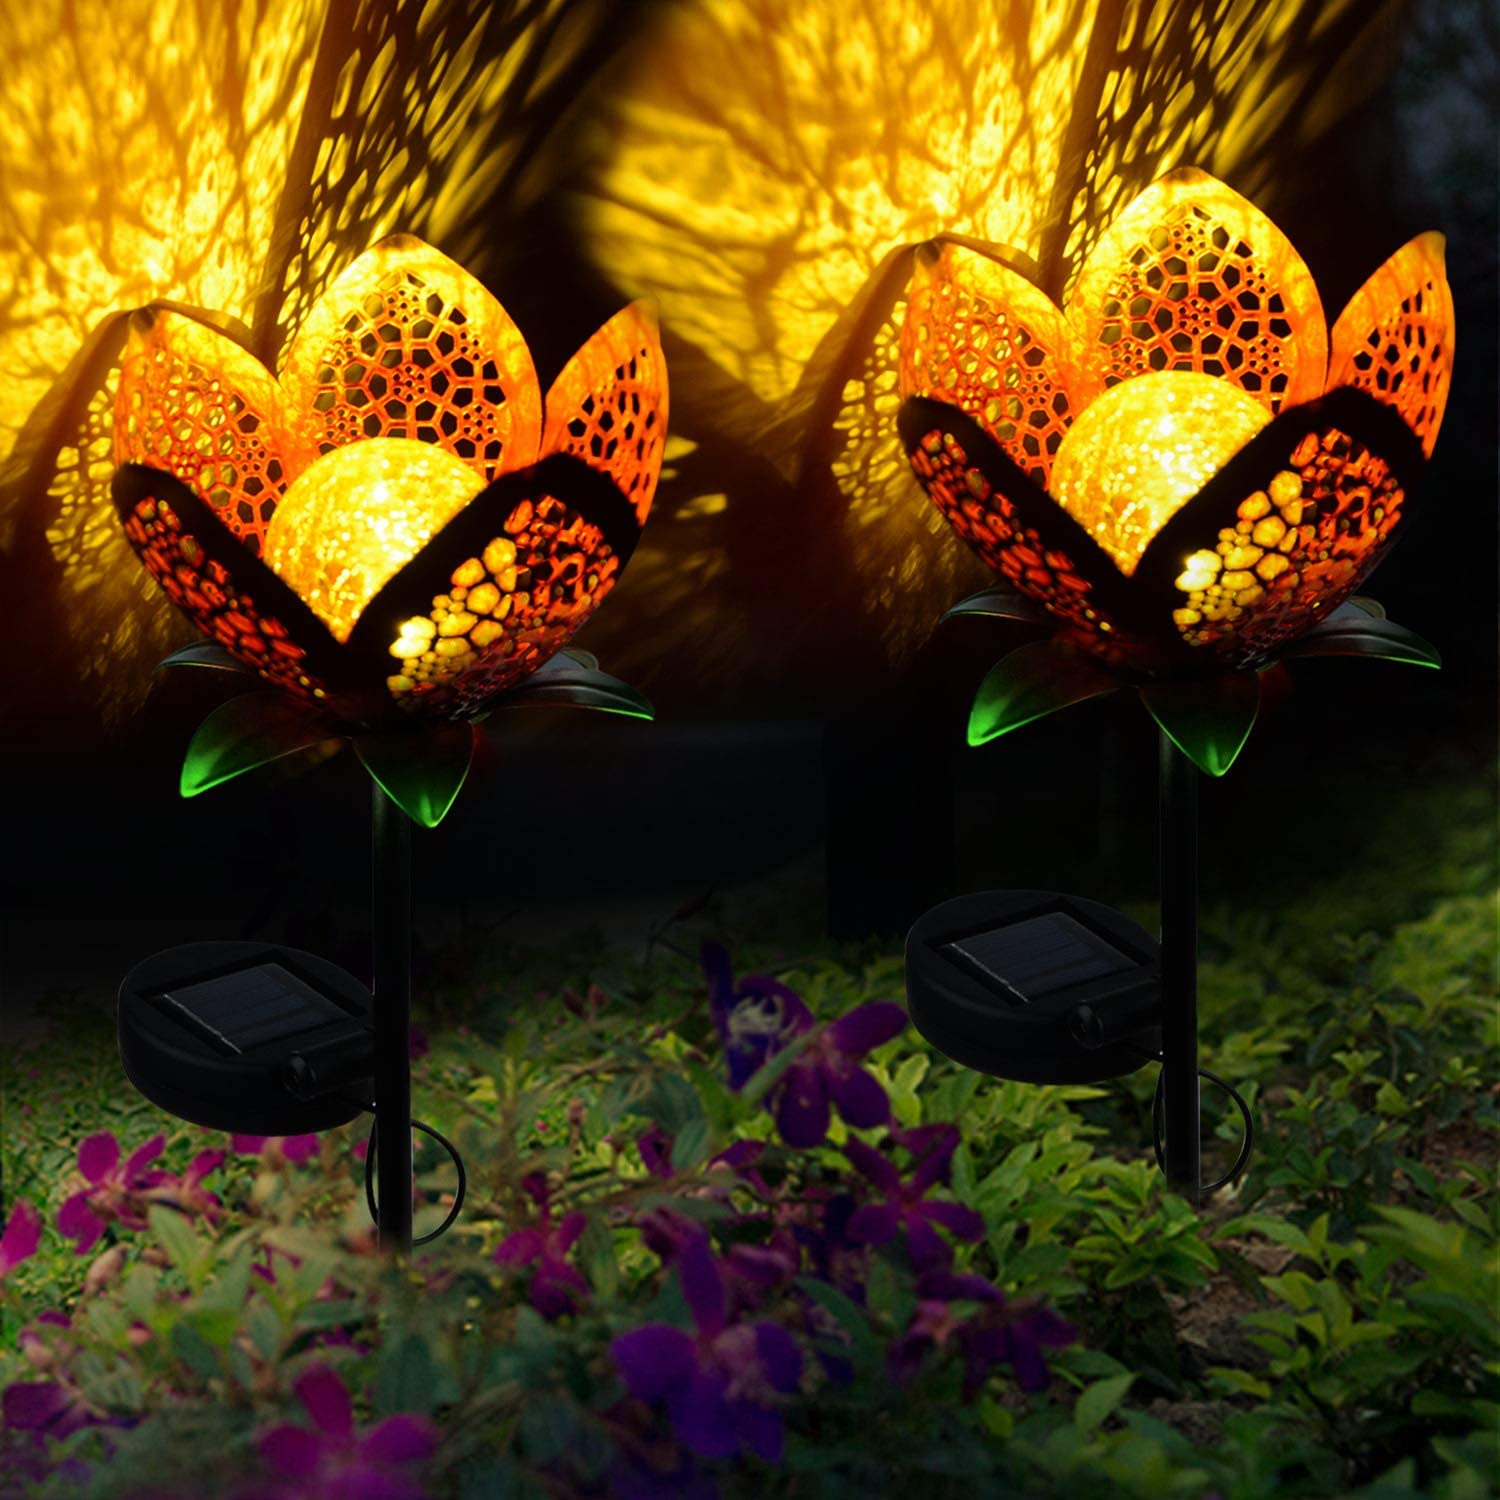 Pannow Large Metal Glass Solar Flowers Yard Art, Garden Solar Lights Outdoor,Solar Powered Stake Lights,Decorative Garden Lights for Walkway,Pathway,Yard,Lawn,2Pack